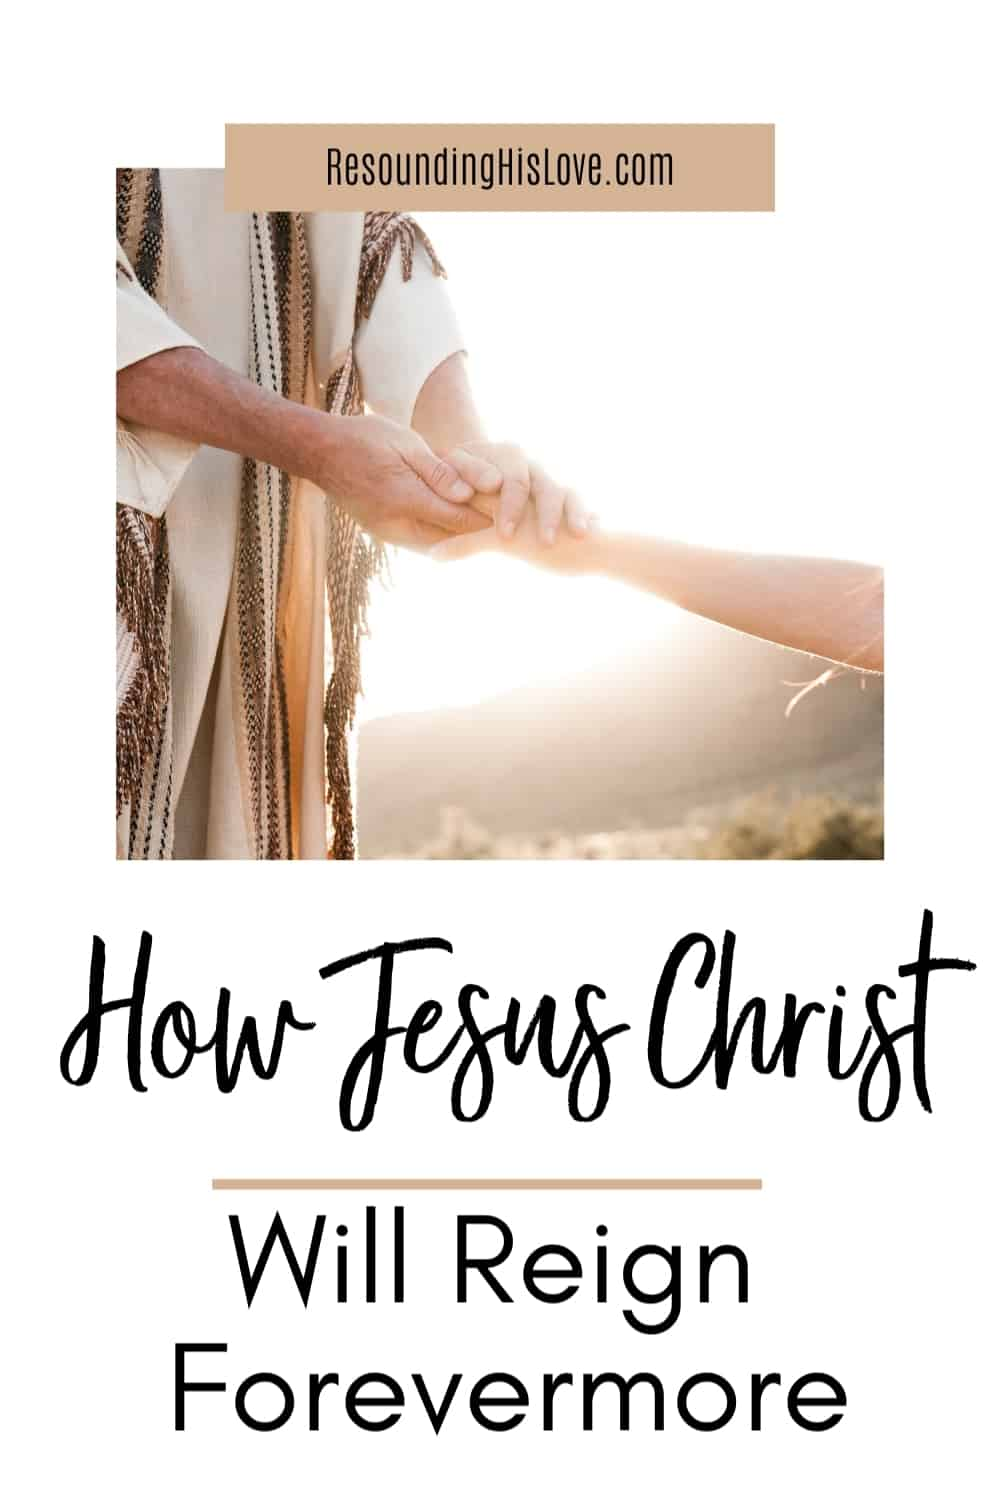 a man wearing a robe reaching out to grasp another person's hand with text How Jesus Will Reign Forevermore